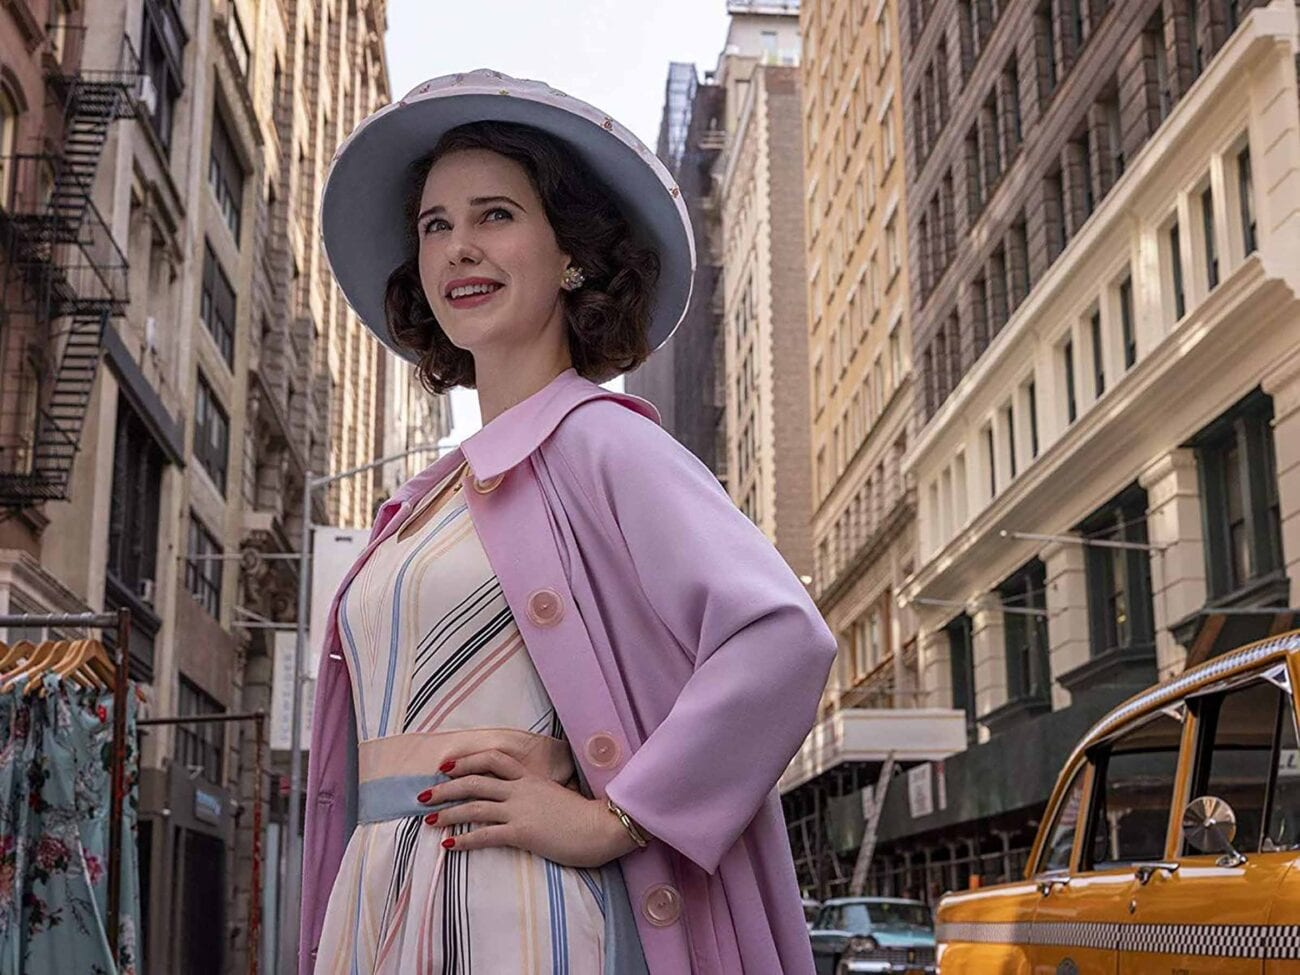 The Amazon Prime hit 'The Marvelous Mrs. Maisel' is returning for season 4! Whet your appetite with some of the best moments of the past 3 seasons.